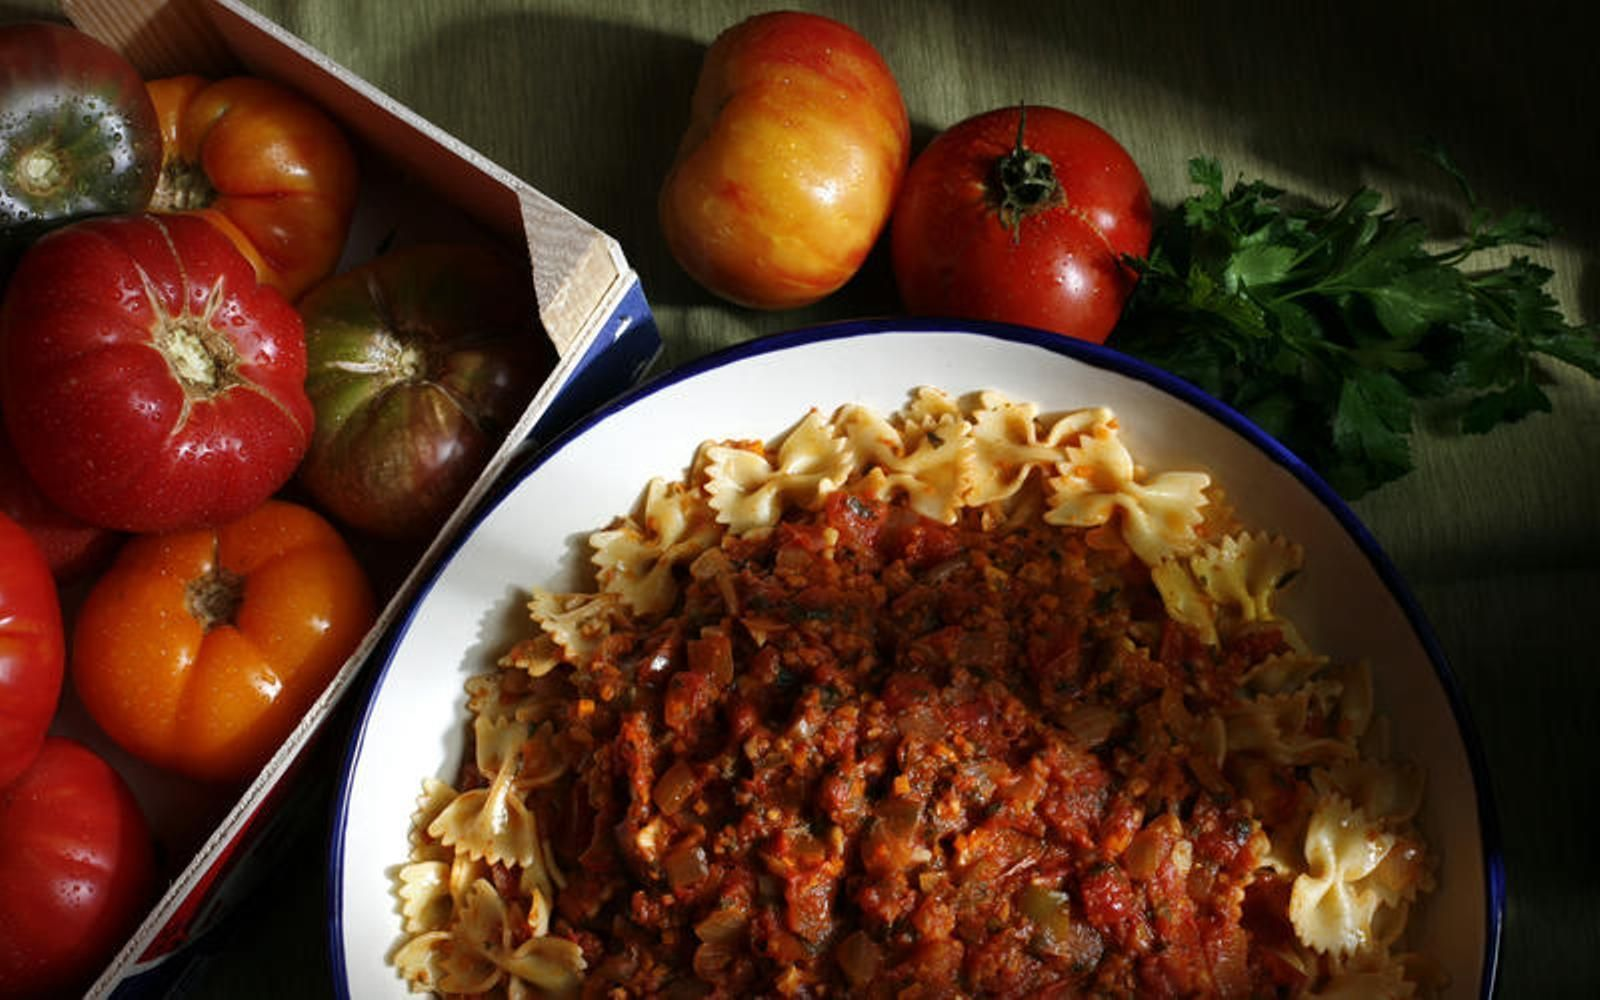 Have extra tomatoes? Try this summer tomato sauce recipe